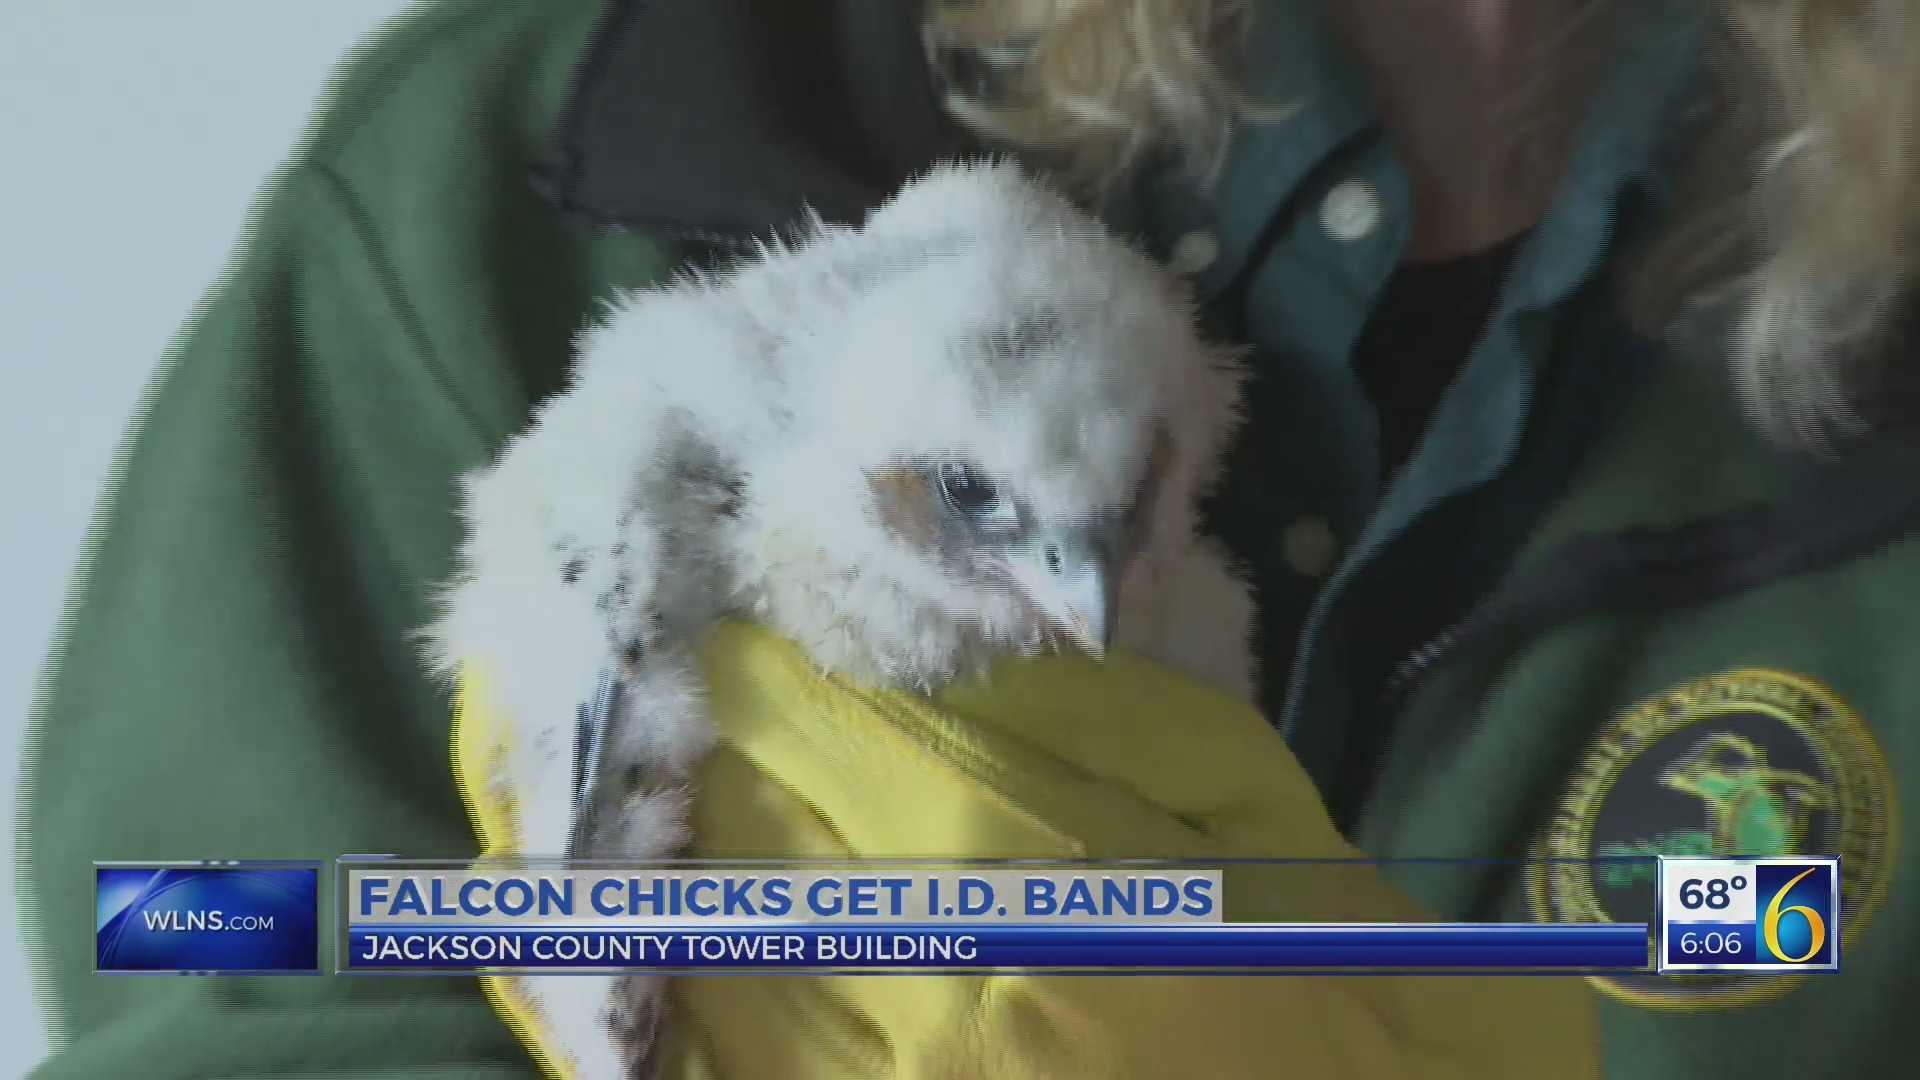 Falcon chicks get I.D. bands